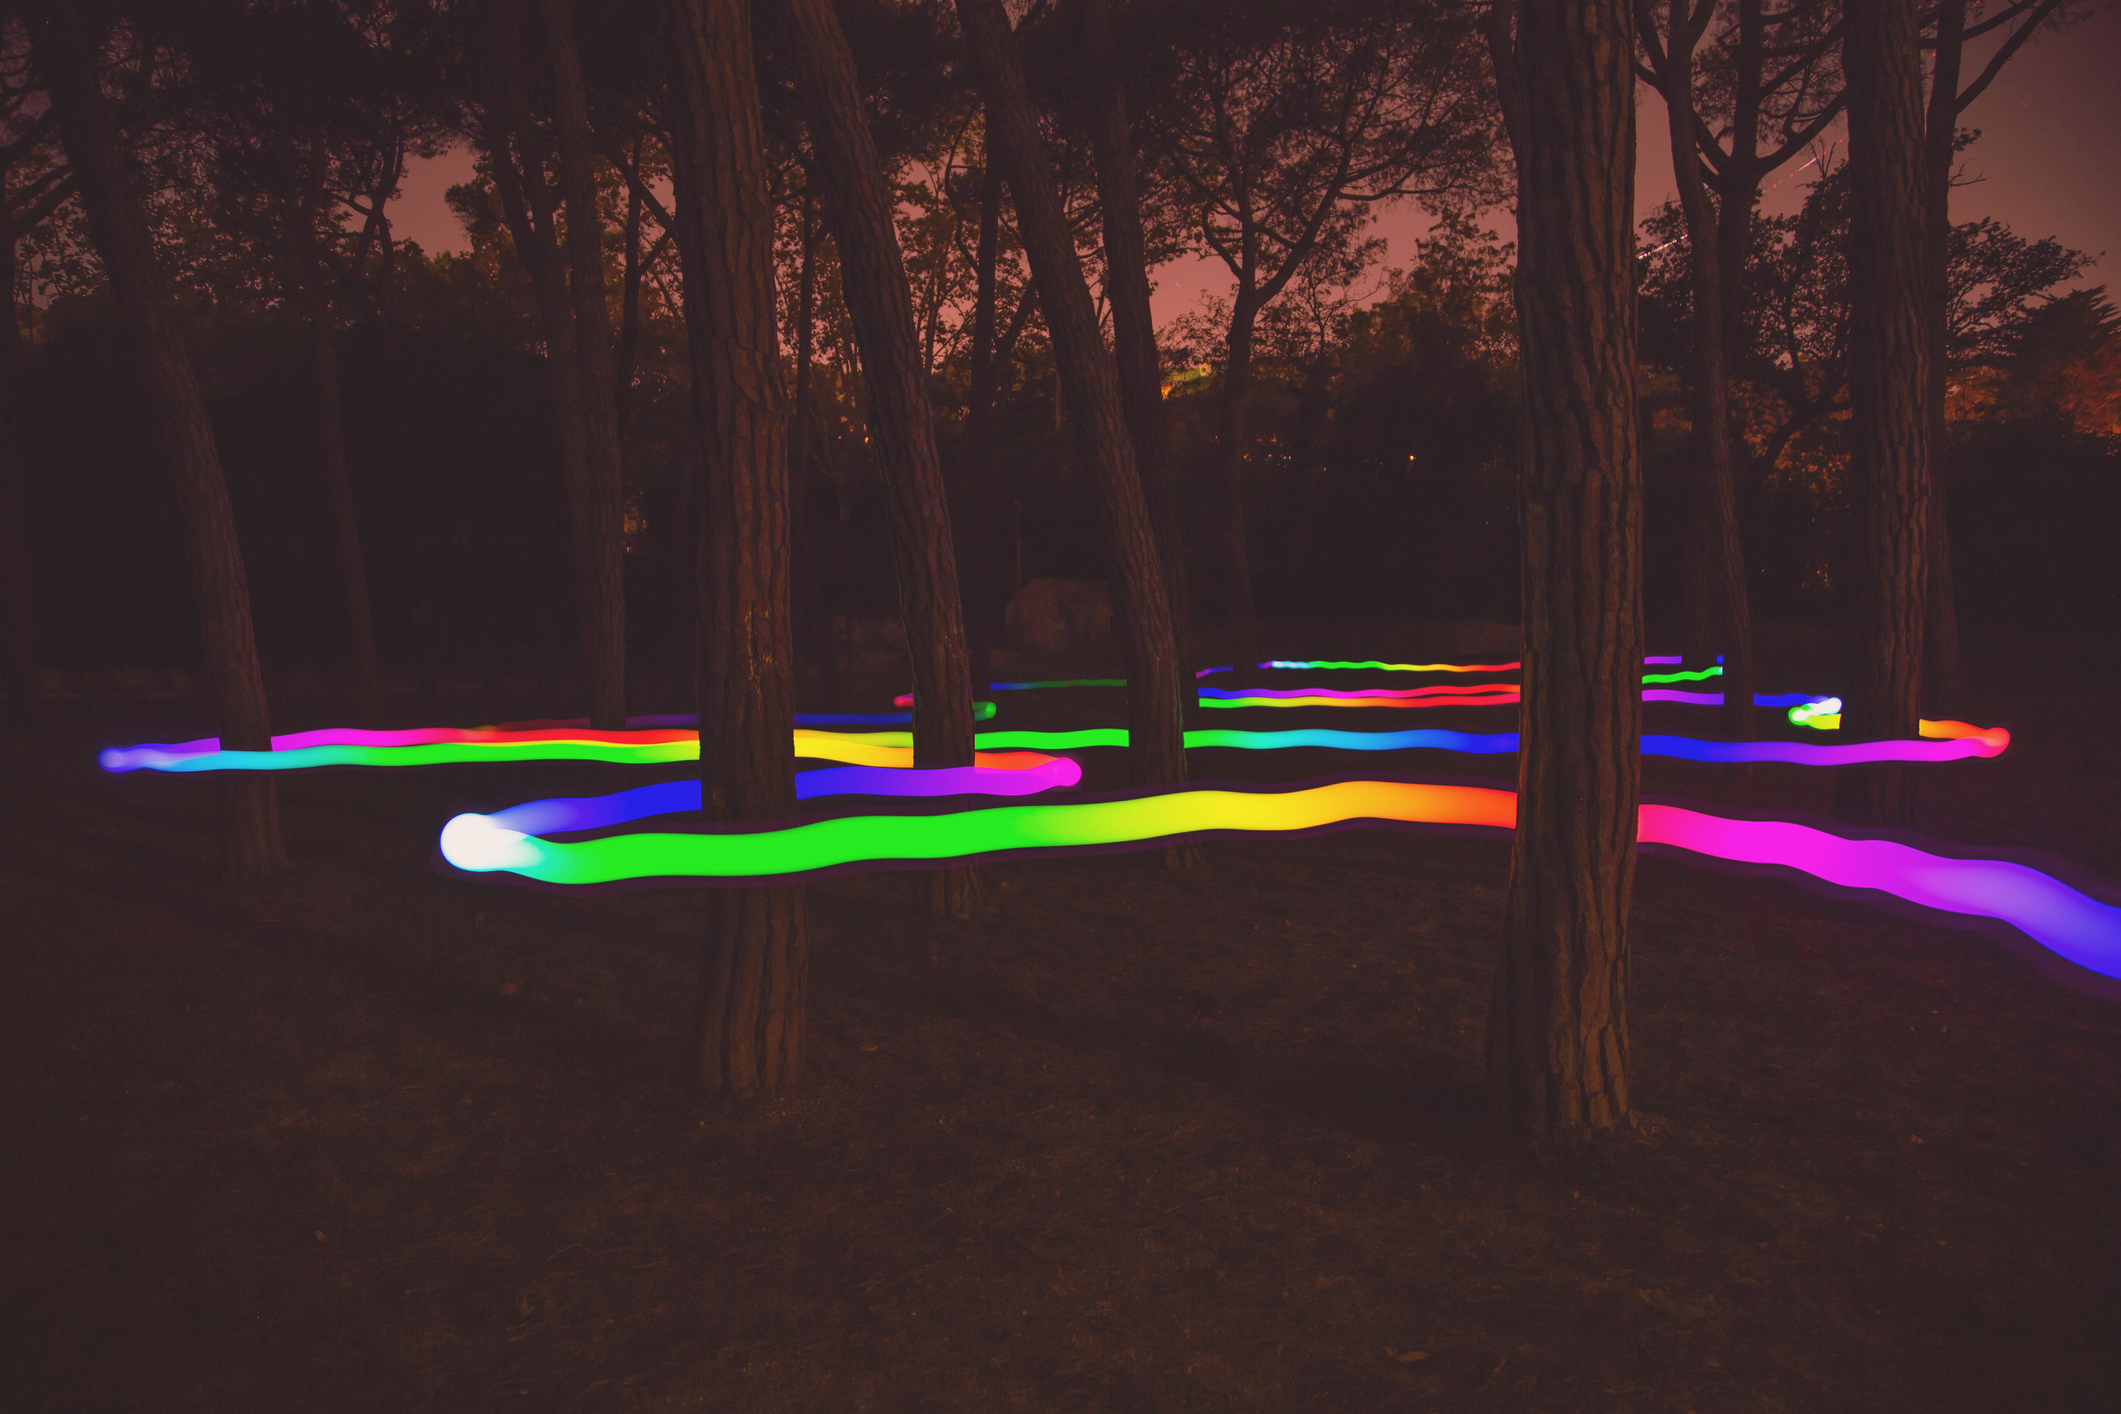 Light painting using technology with light trail with worm shape changing color and moving in between the forest.